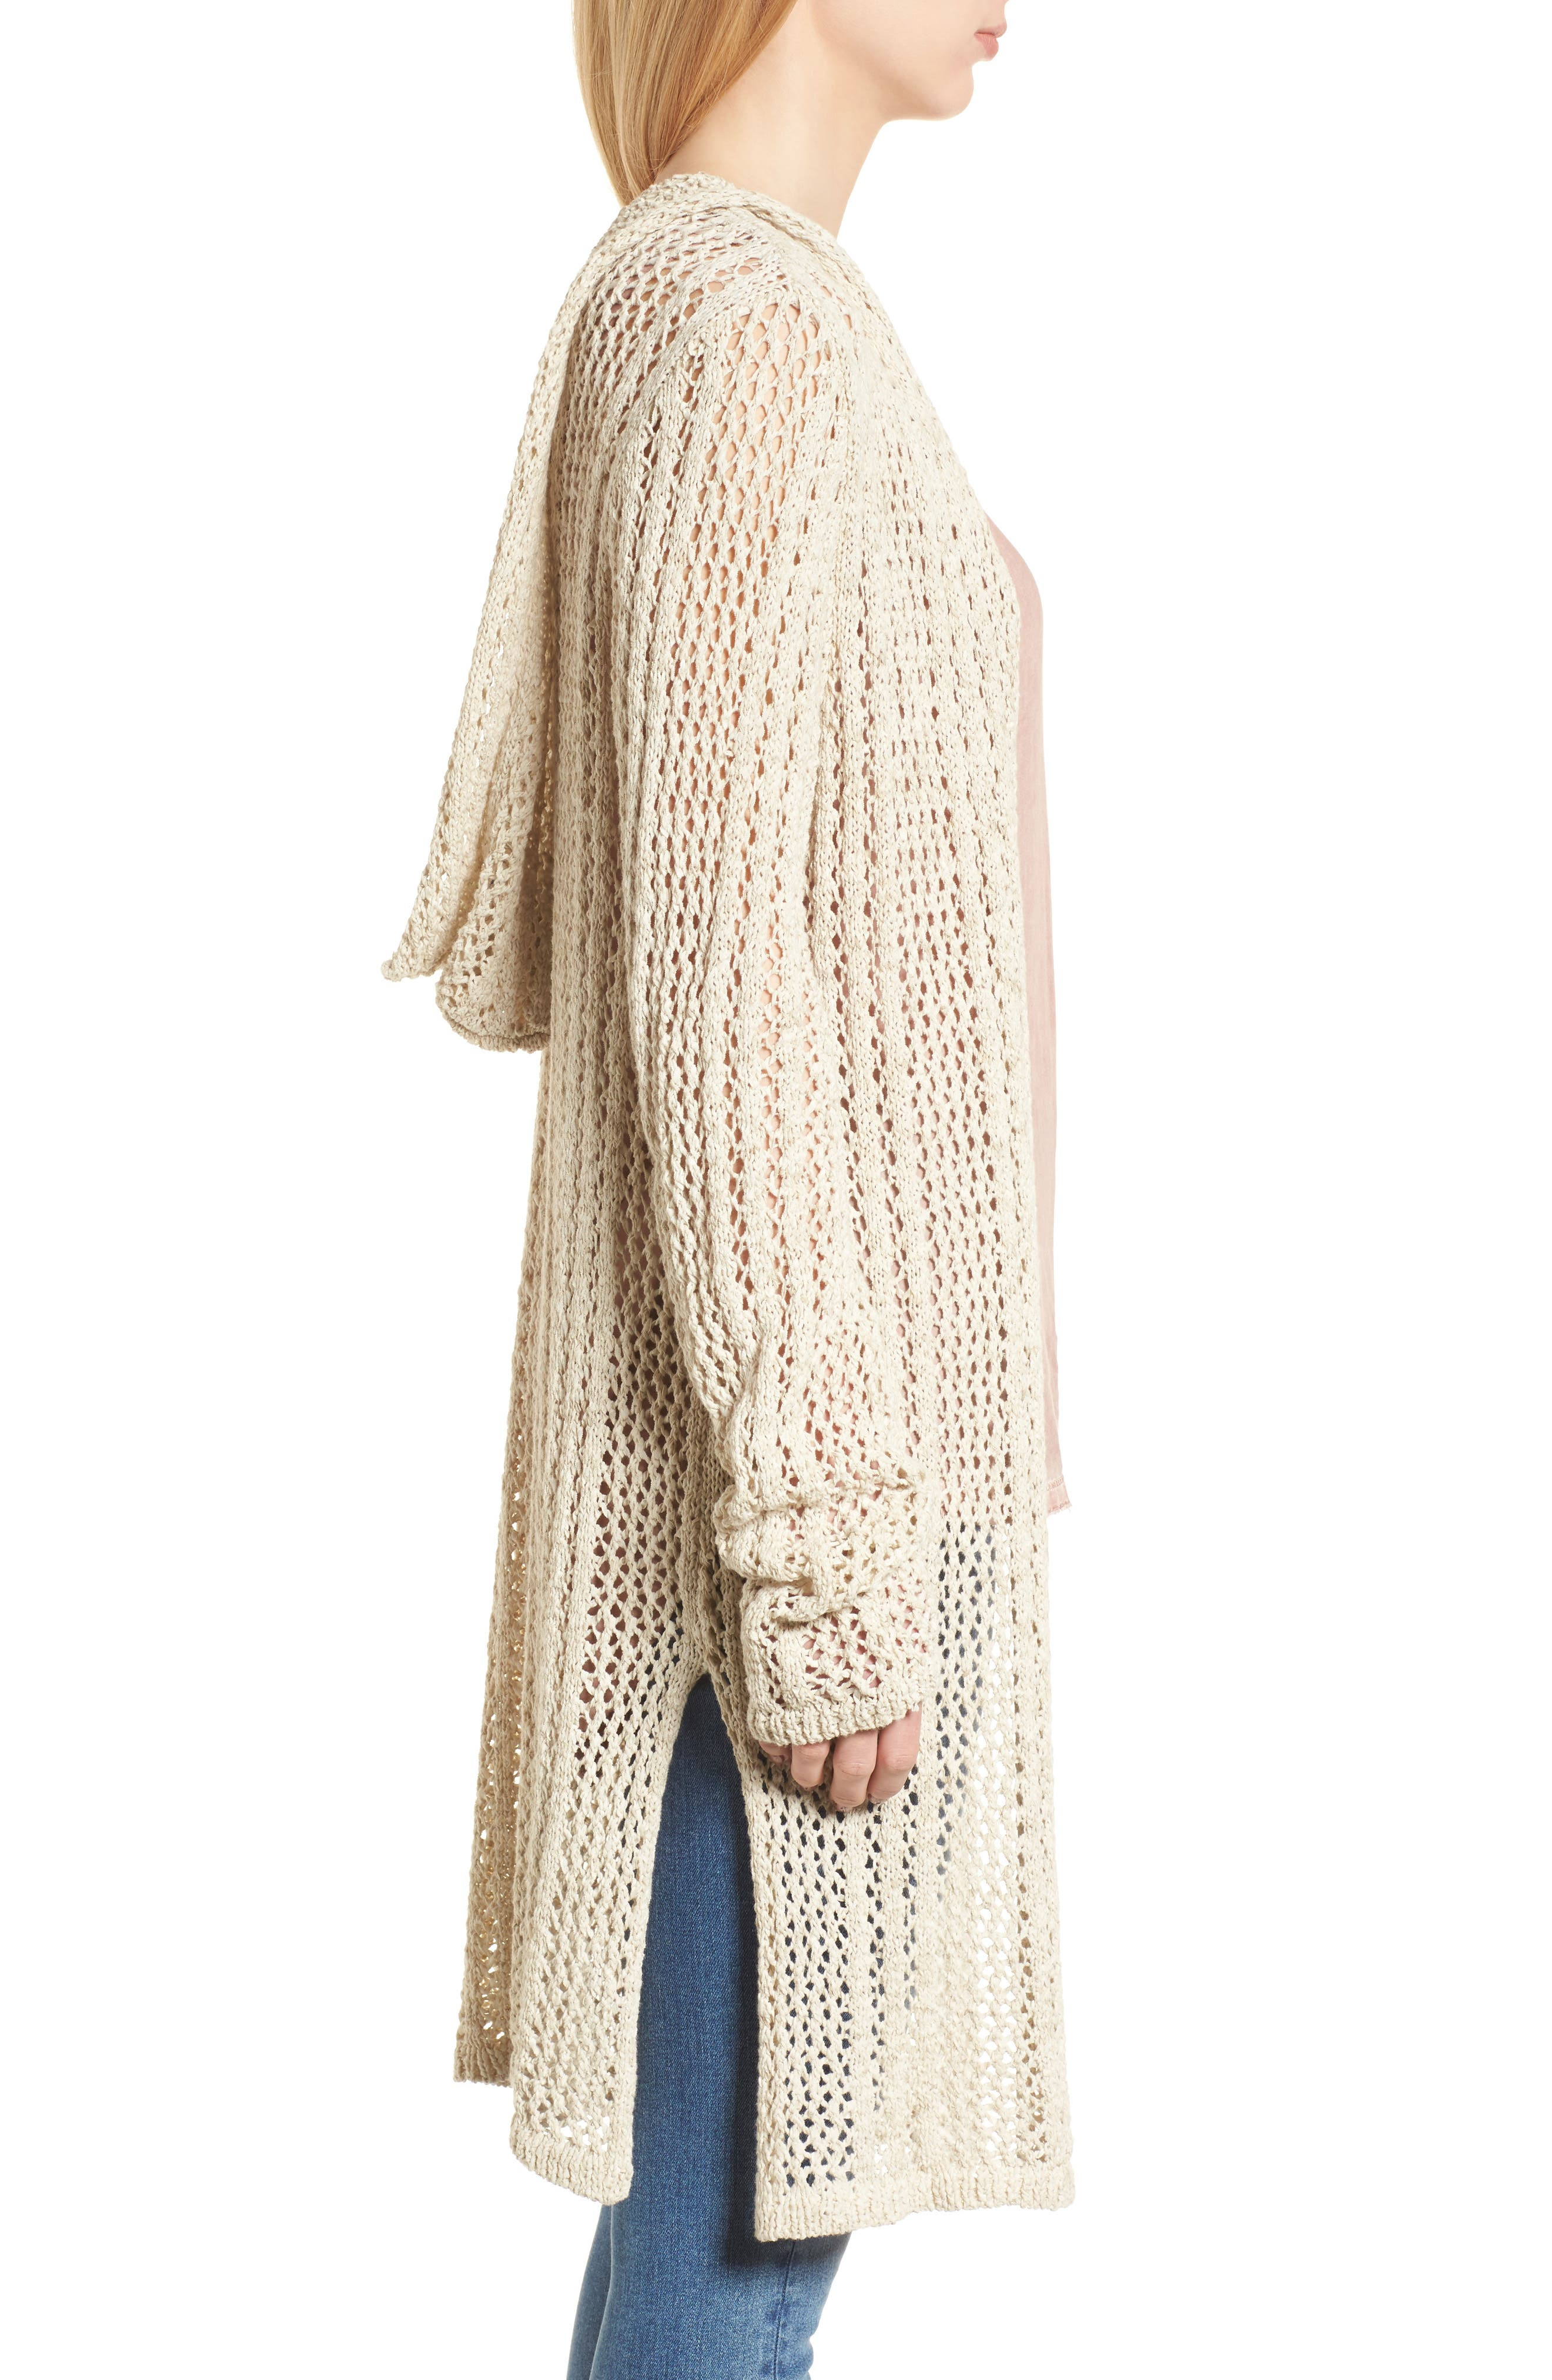 Knox Hooded Cardigan,                             Alternate thumbnail 6, color,